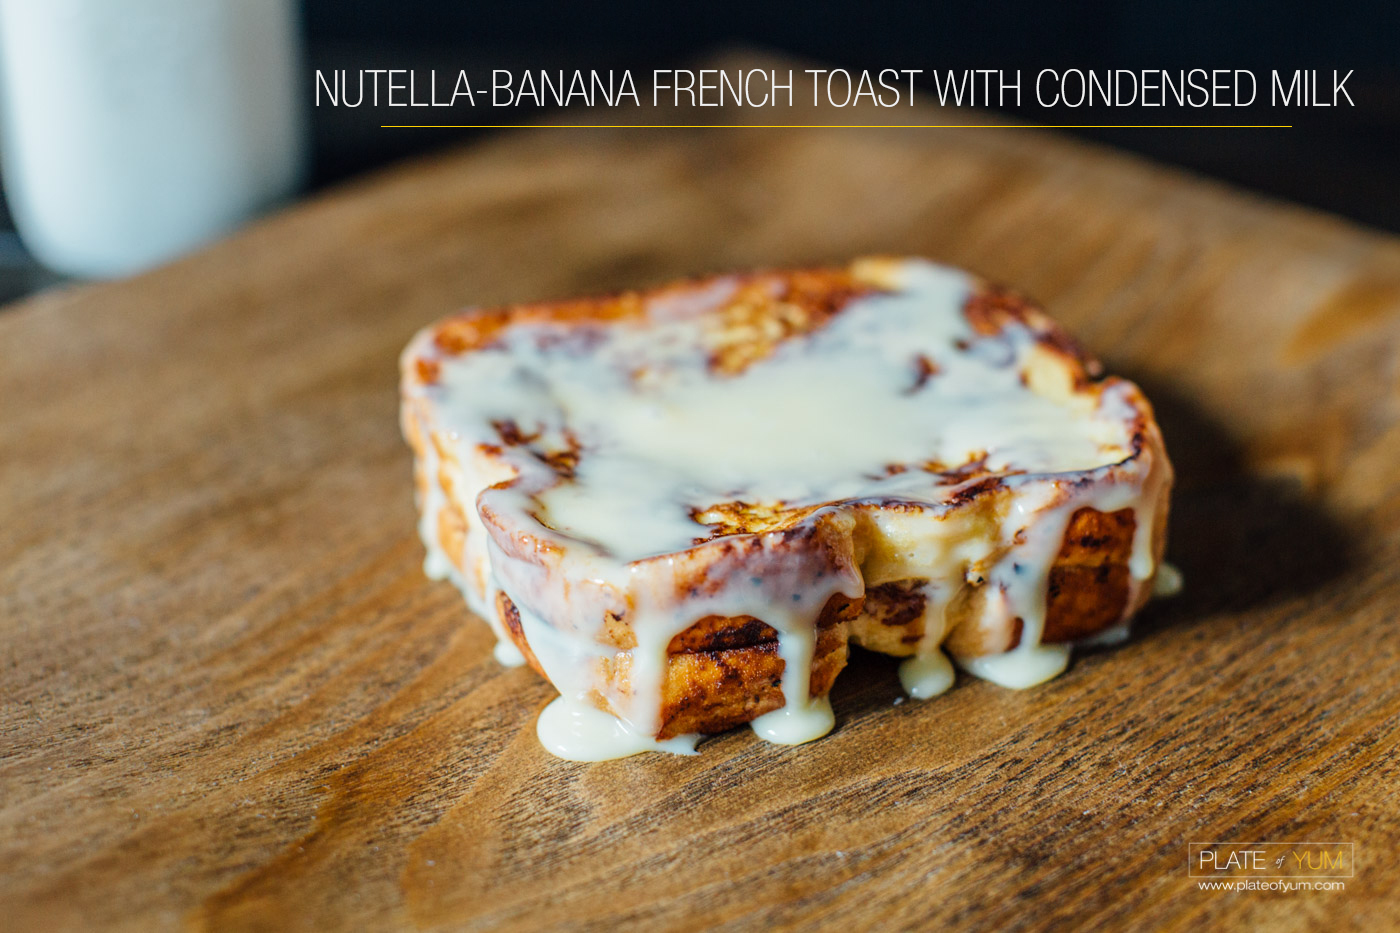 Nutella Banana French Toast with Condensed Milk